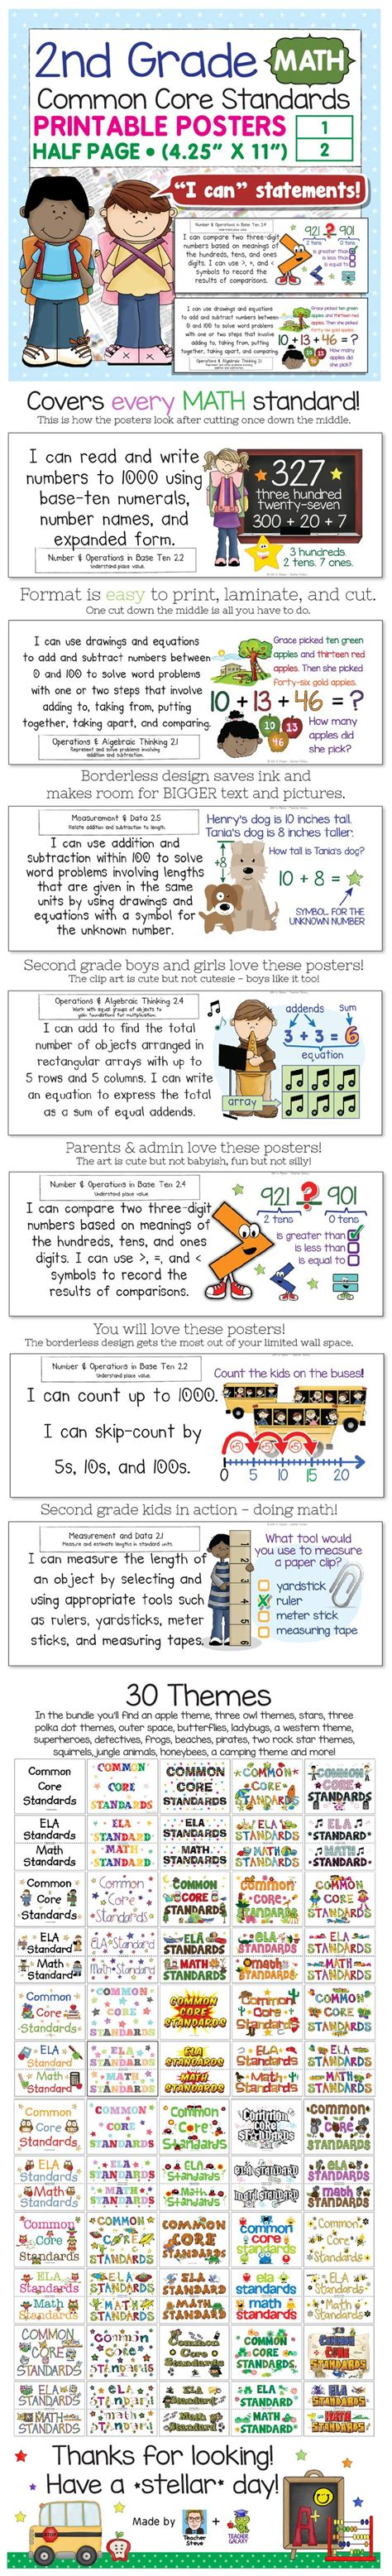 Second Grade Math Common Core Standards Posters! I Updated Them This Week To Include Some